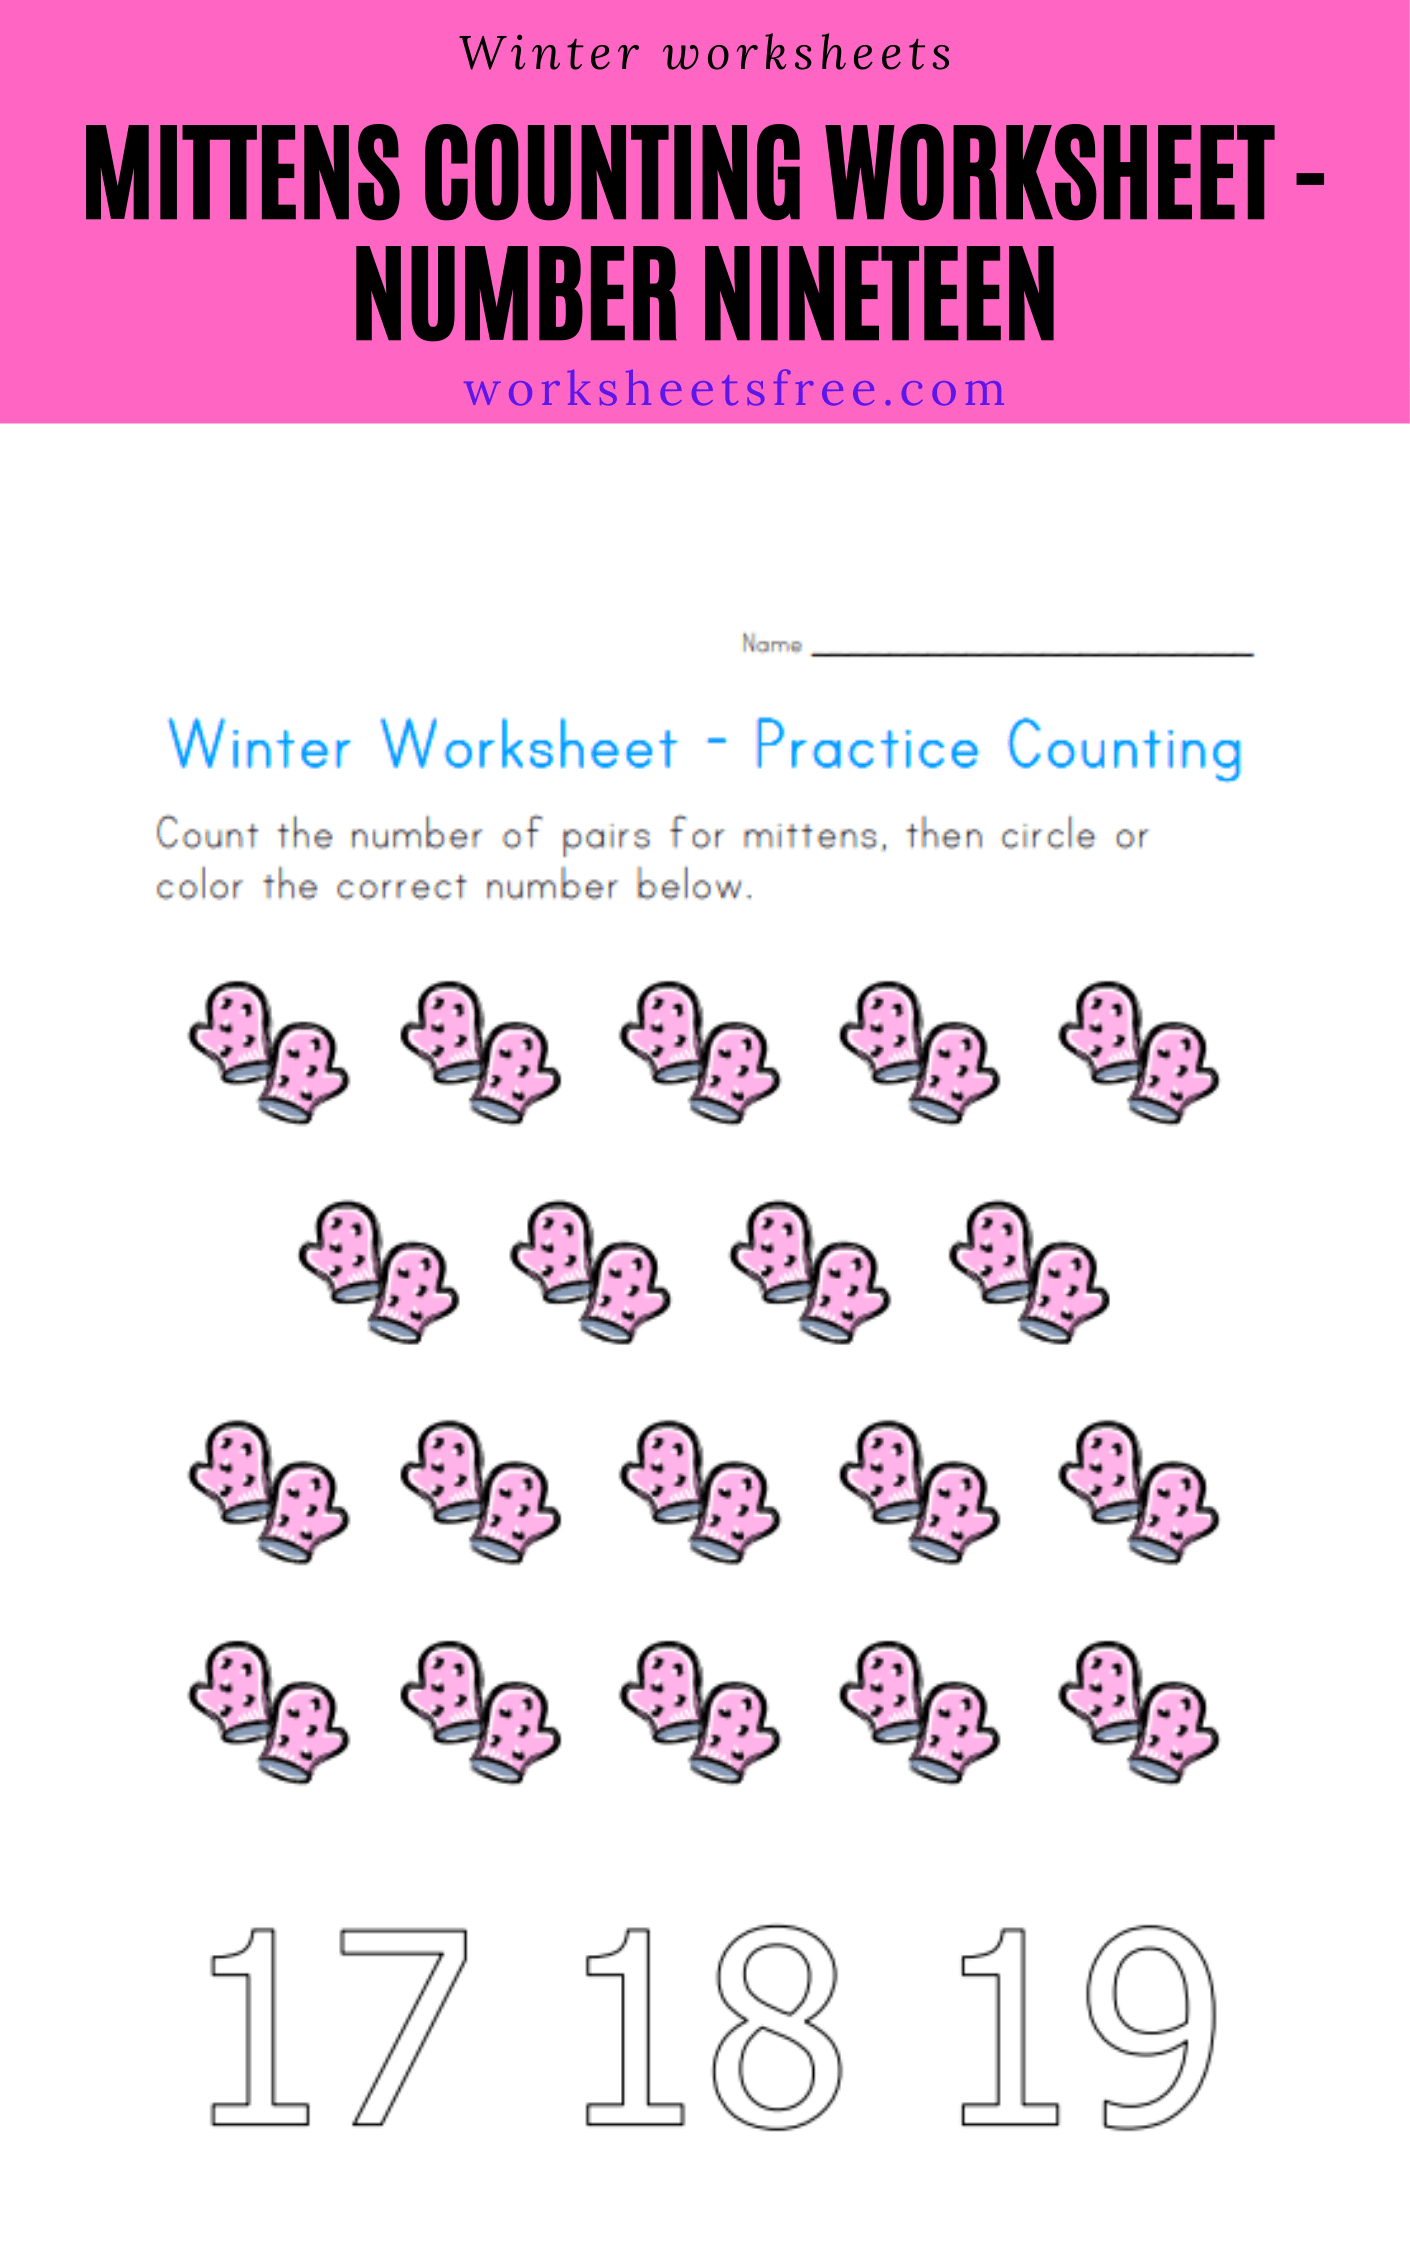 Mittens Counting Worksheet